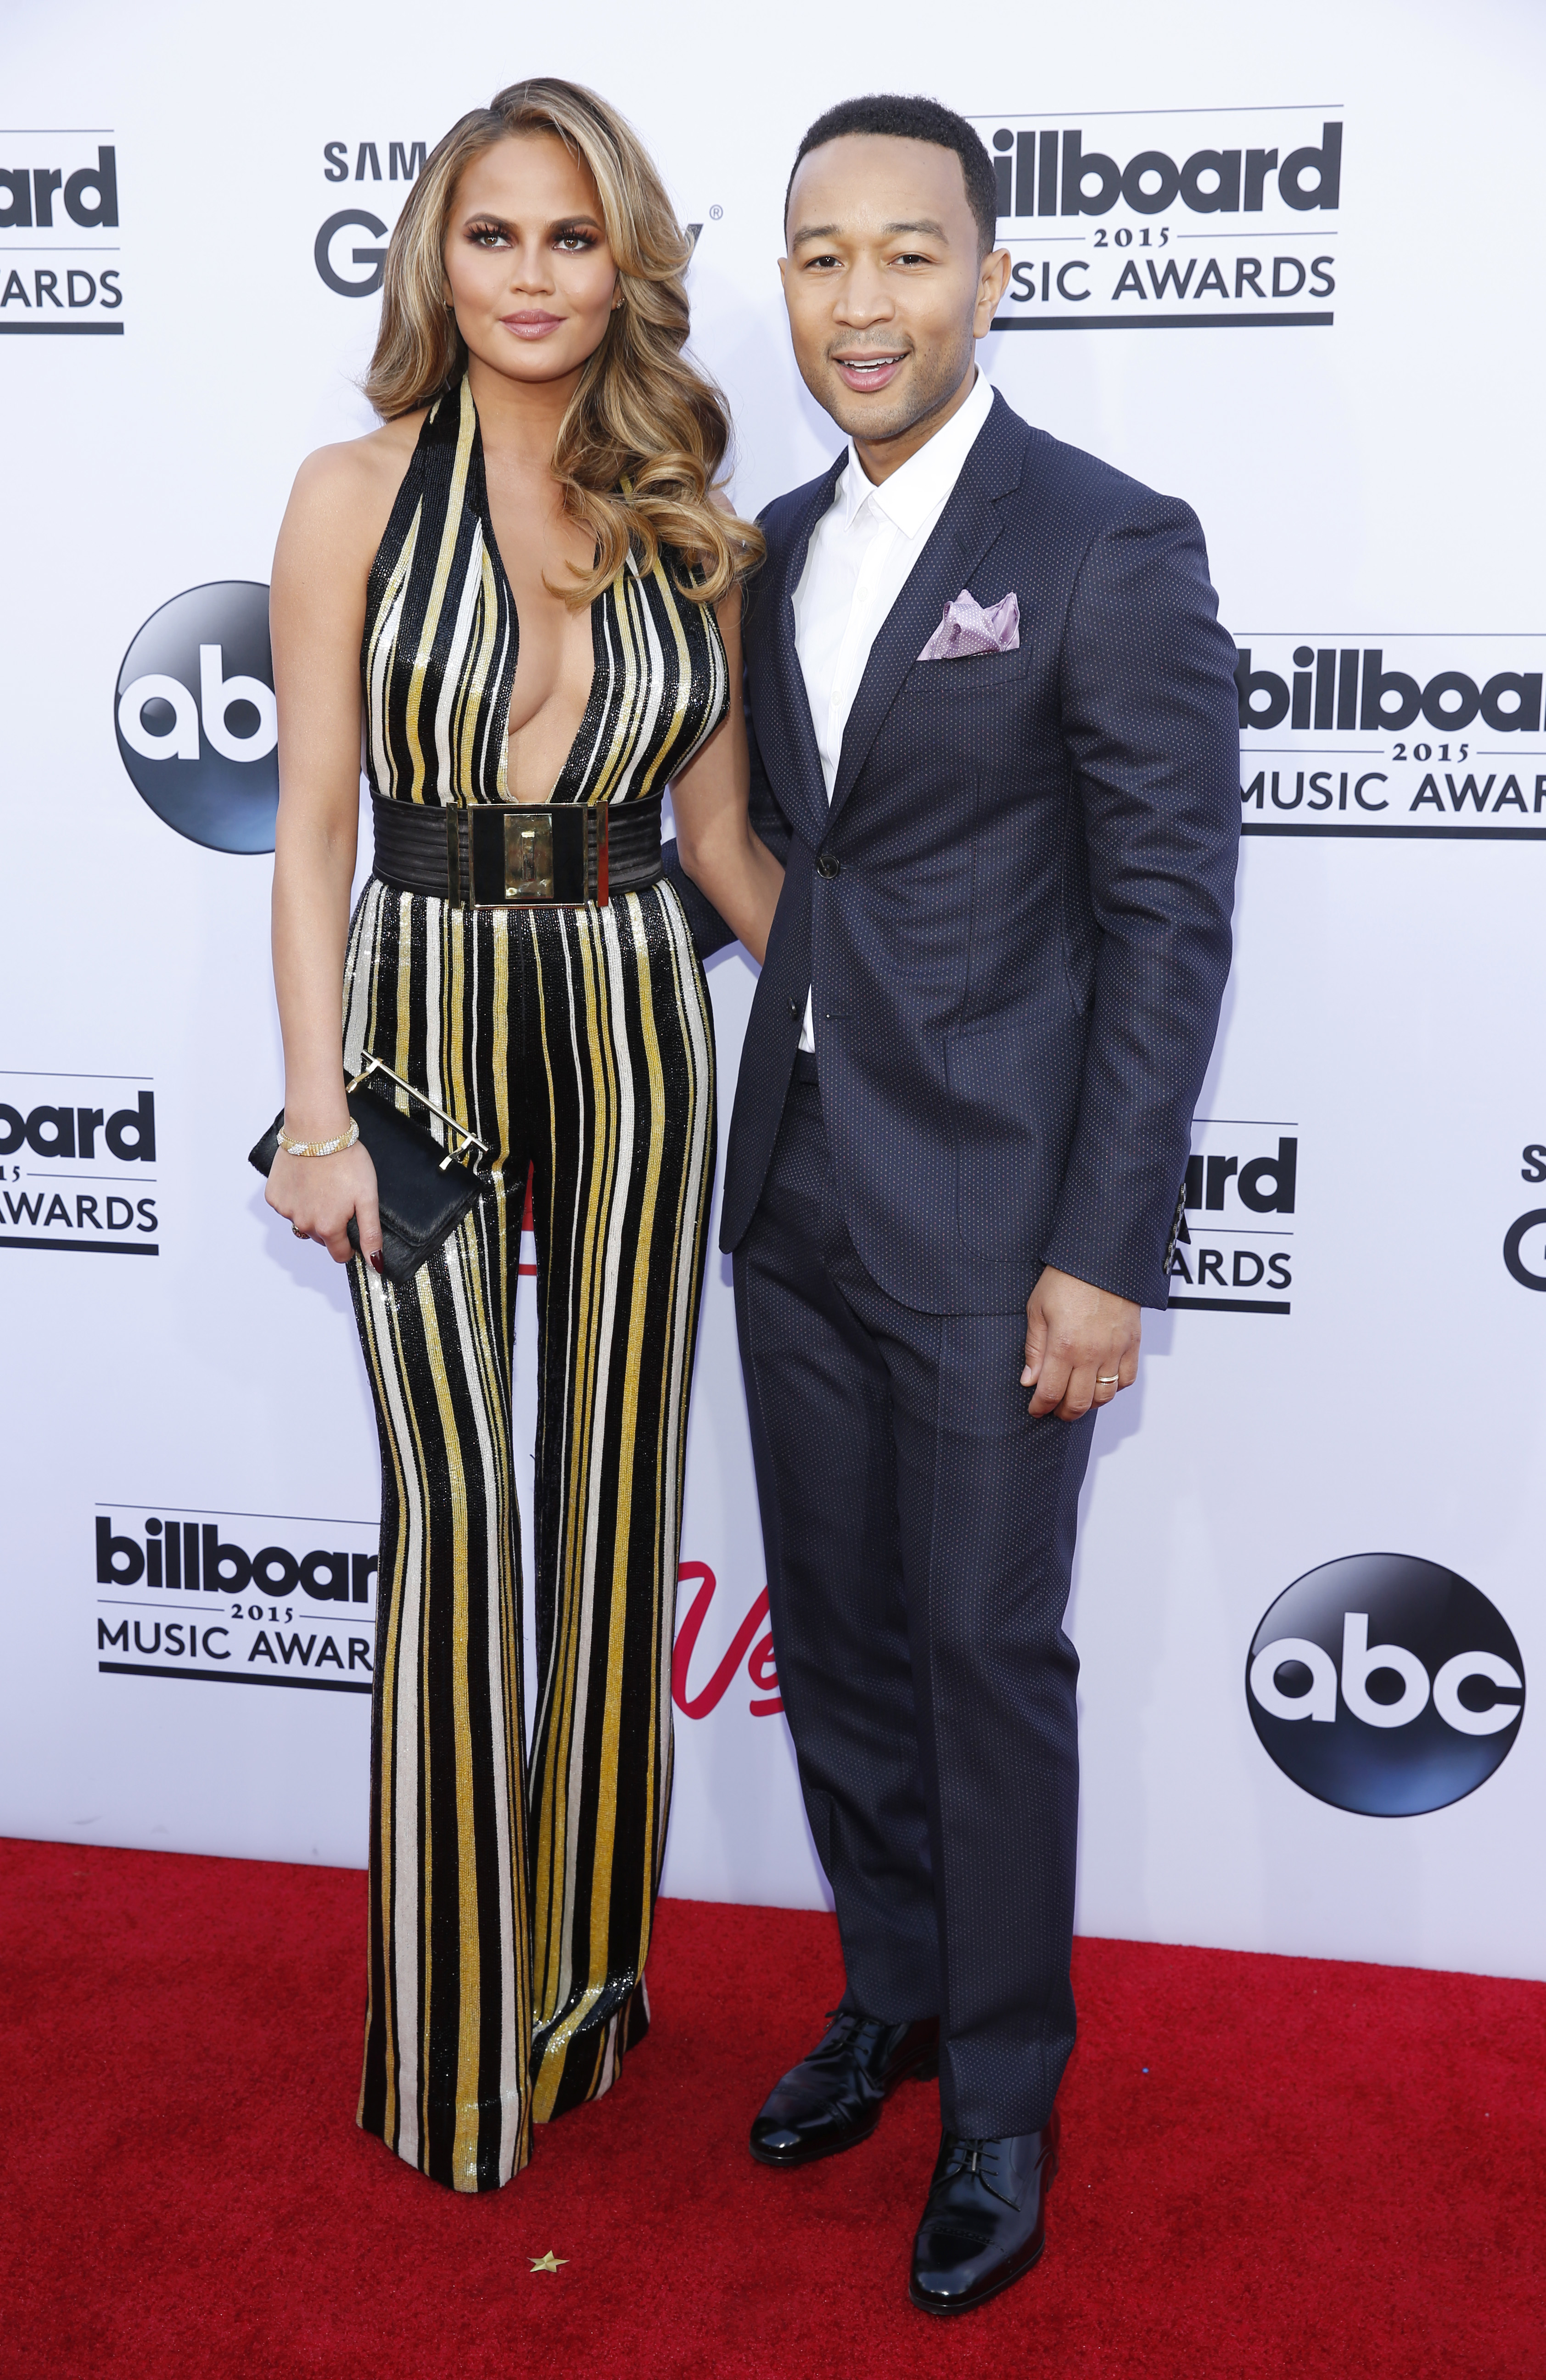 John Legend and Chrissy Teigen are getting ready to start a family